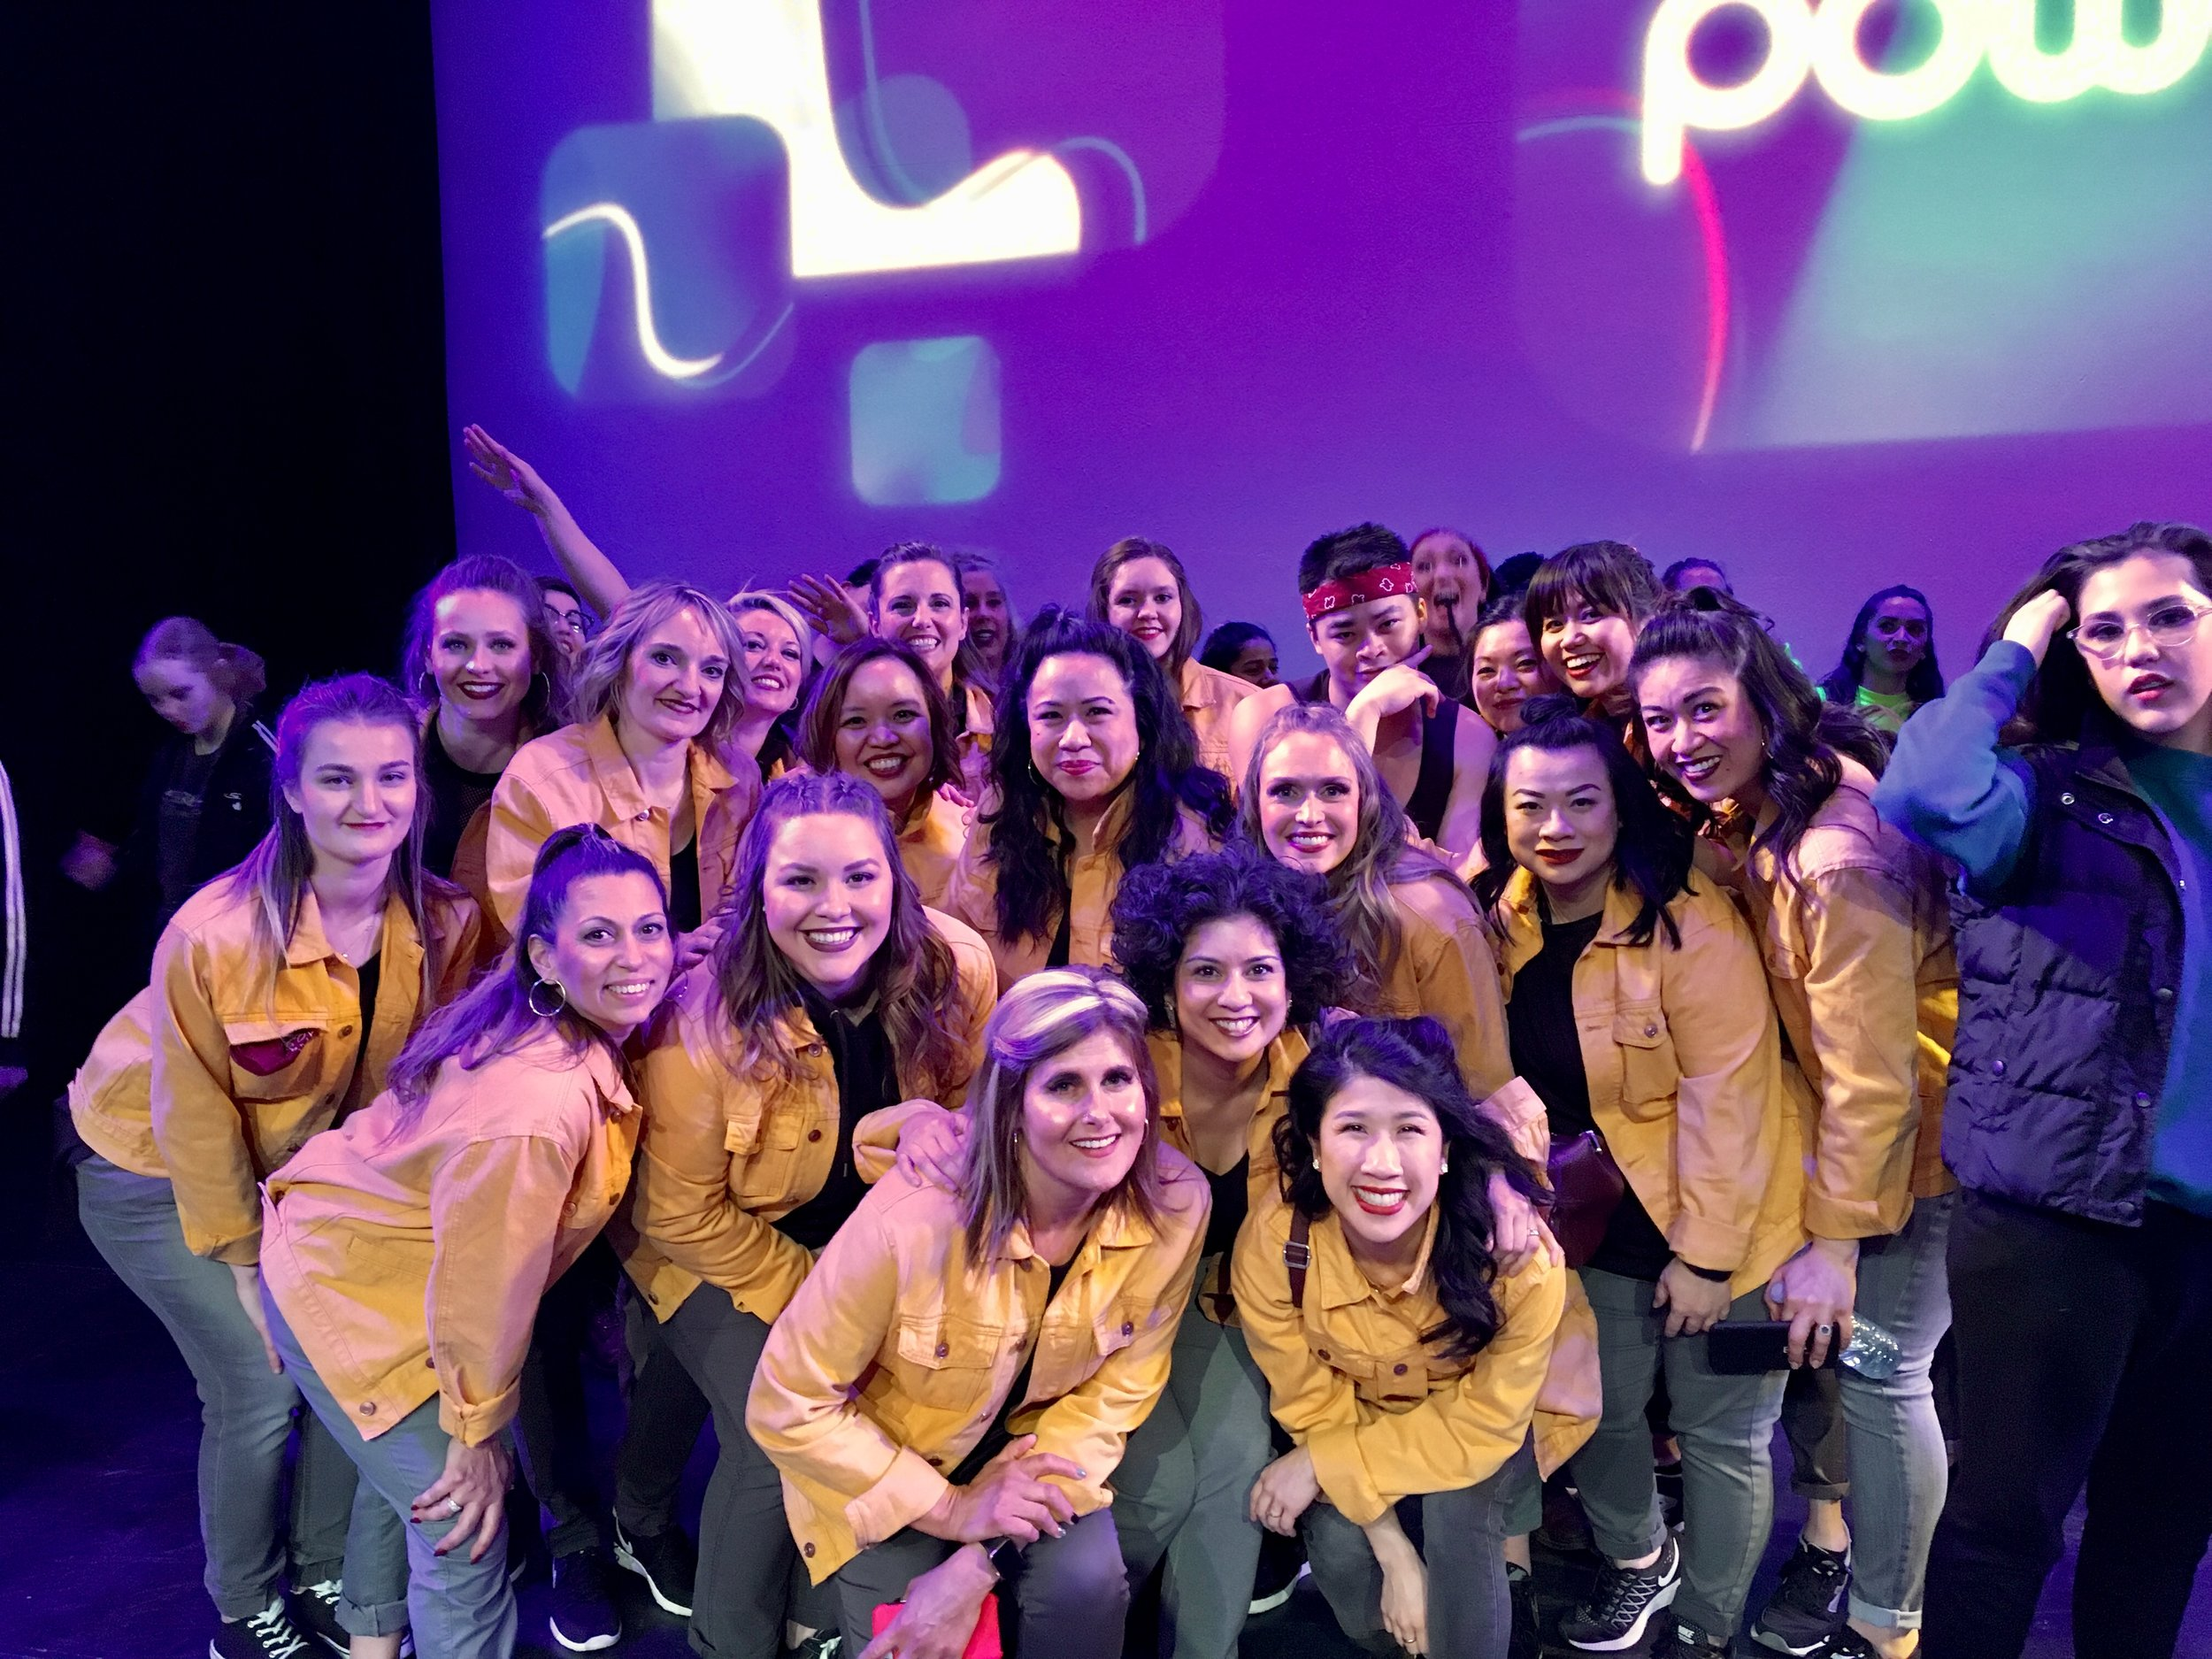 GROWN competes at Dance Power 2019